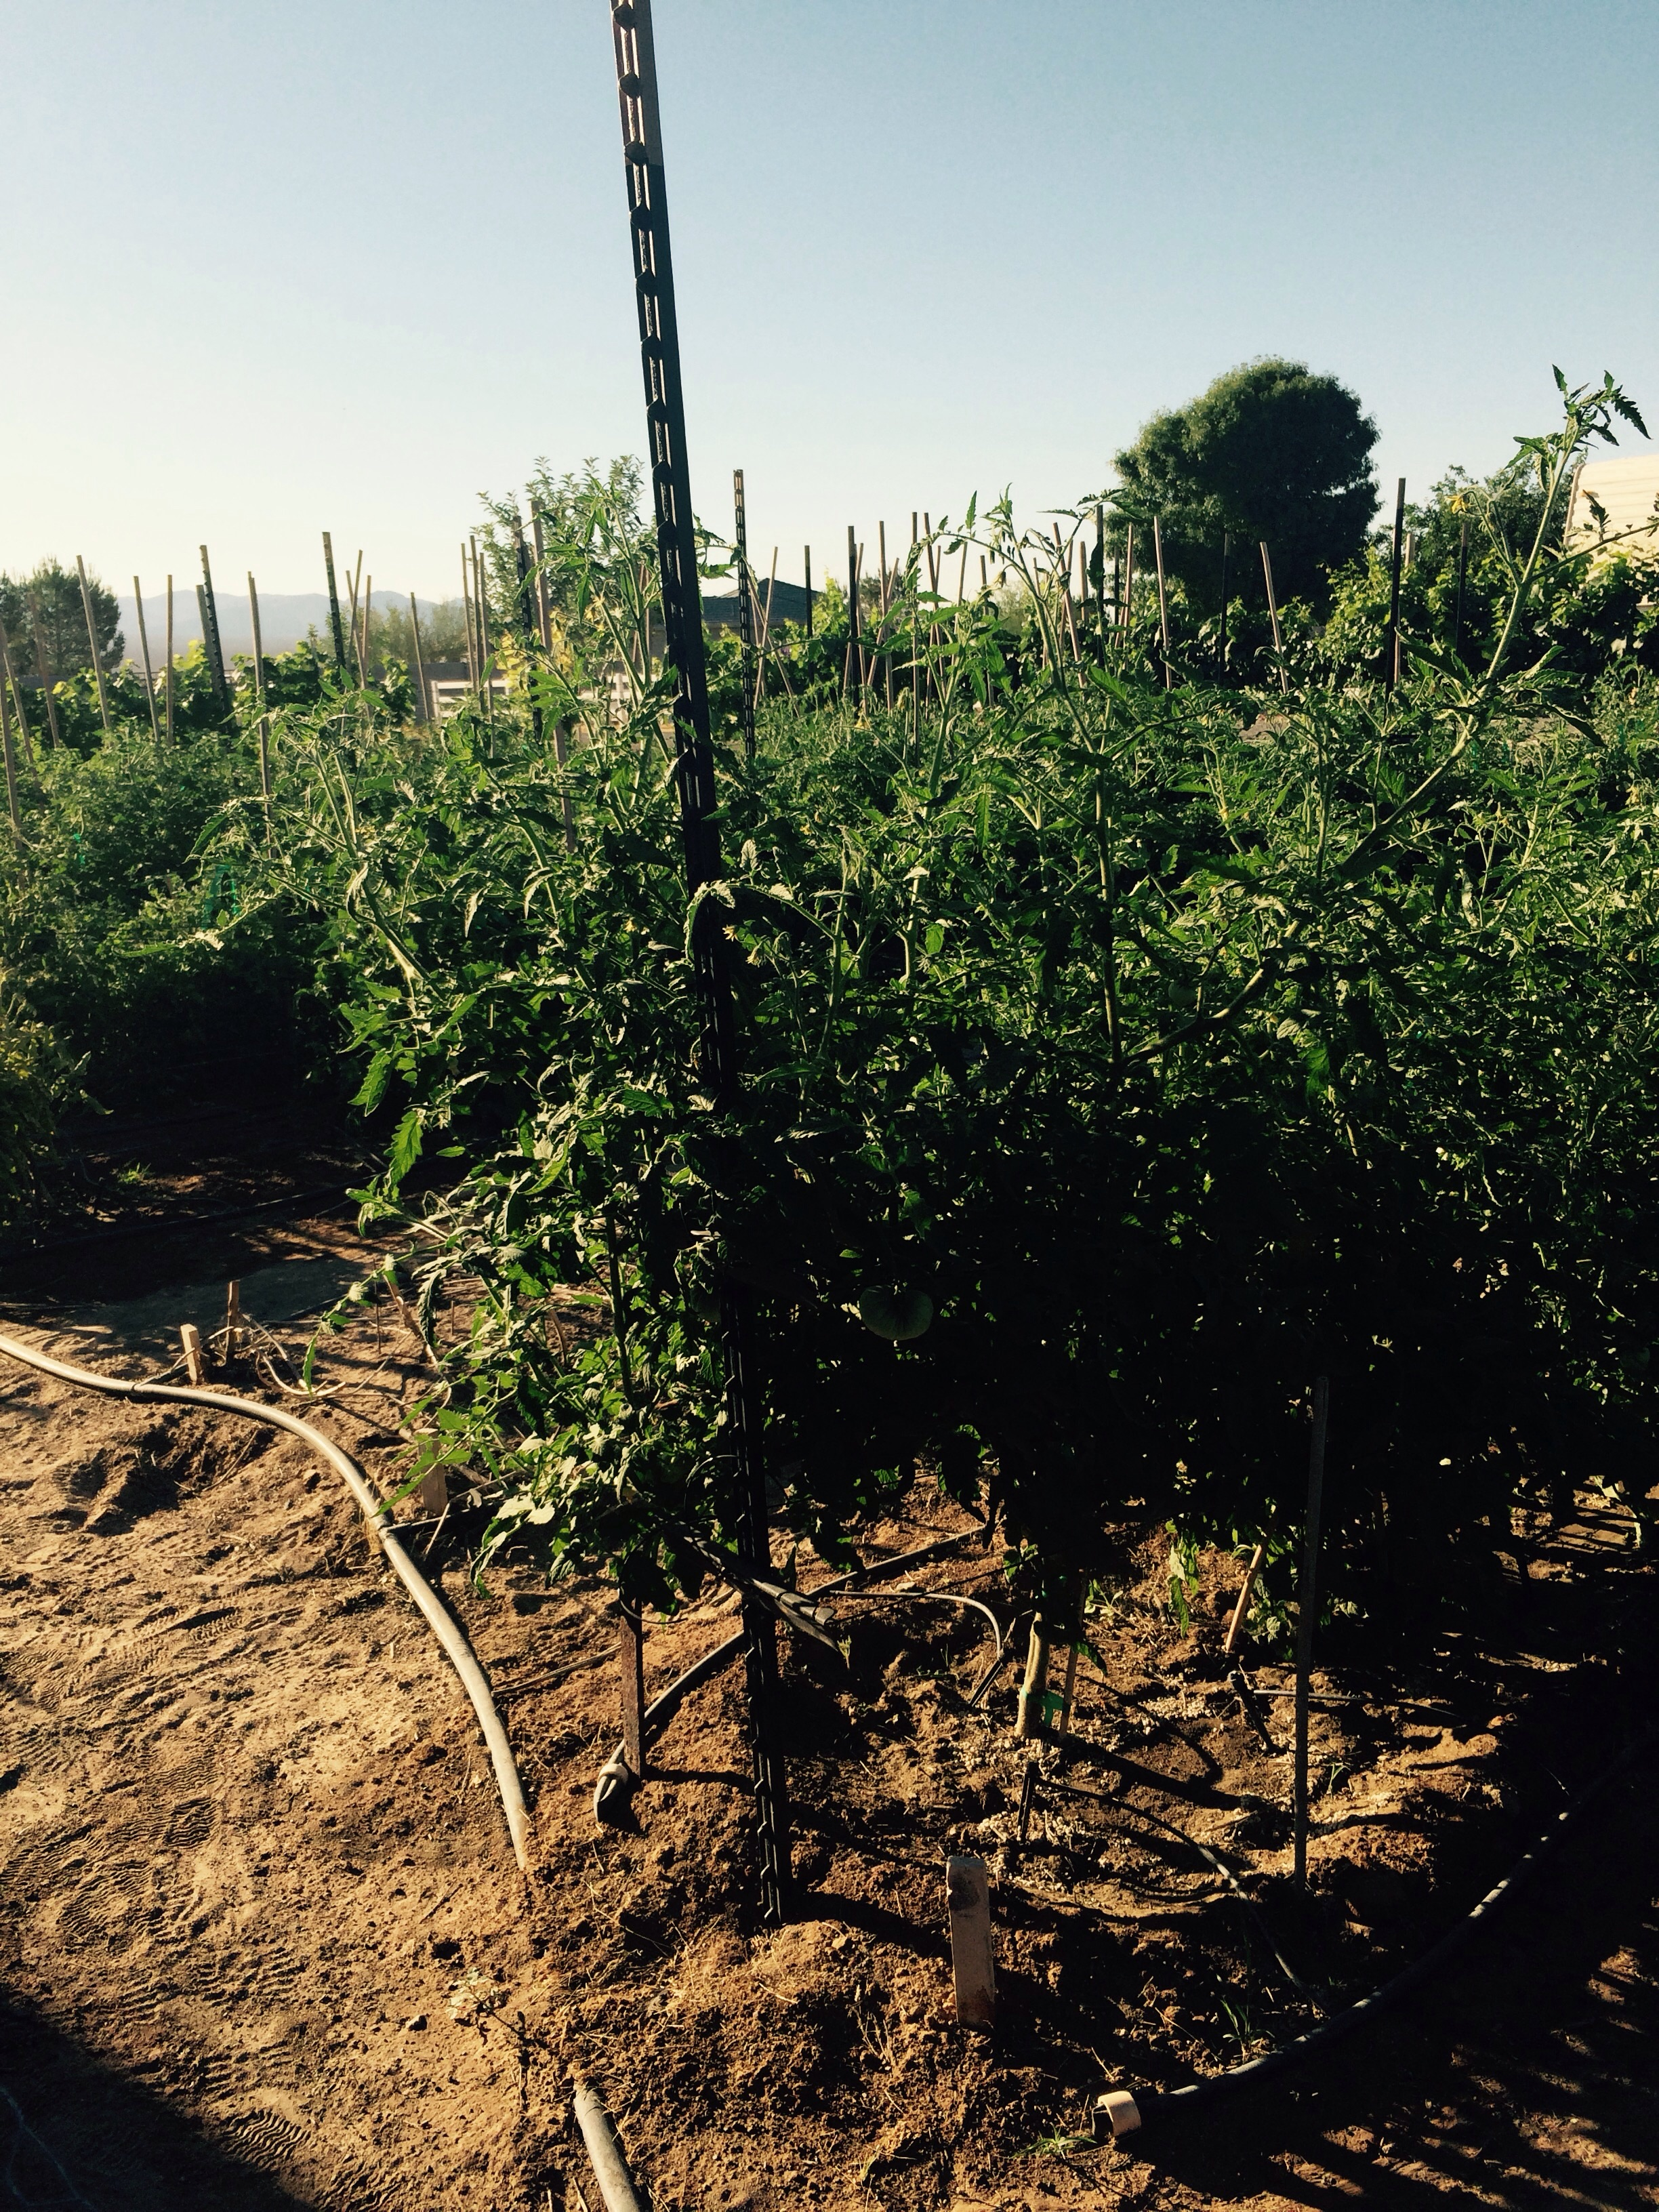 We have hundreds of tomatoes on the vine we hope they all ripen as it's very difficult in the desert